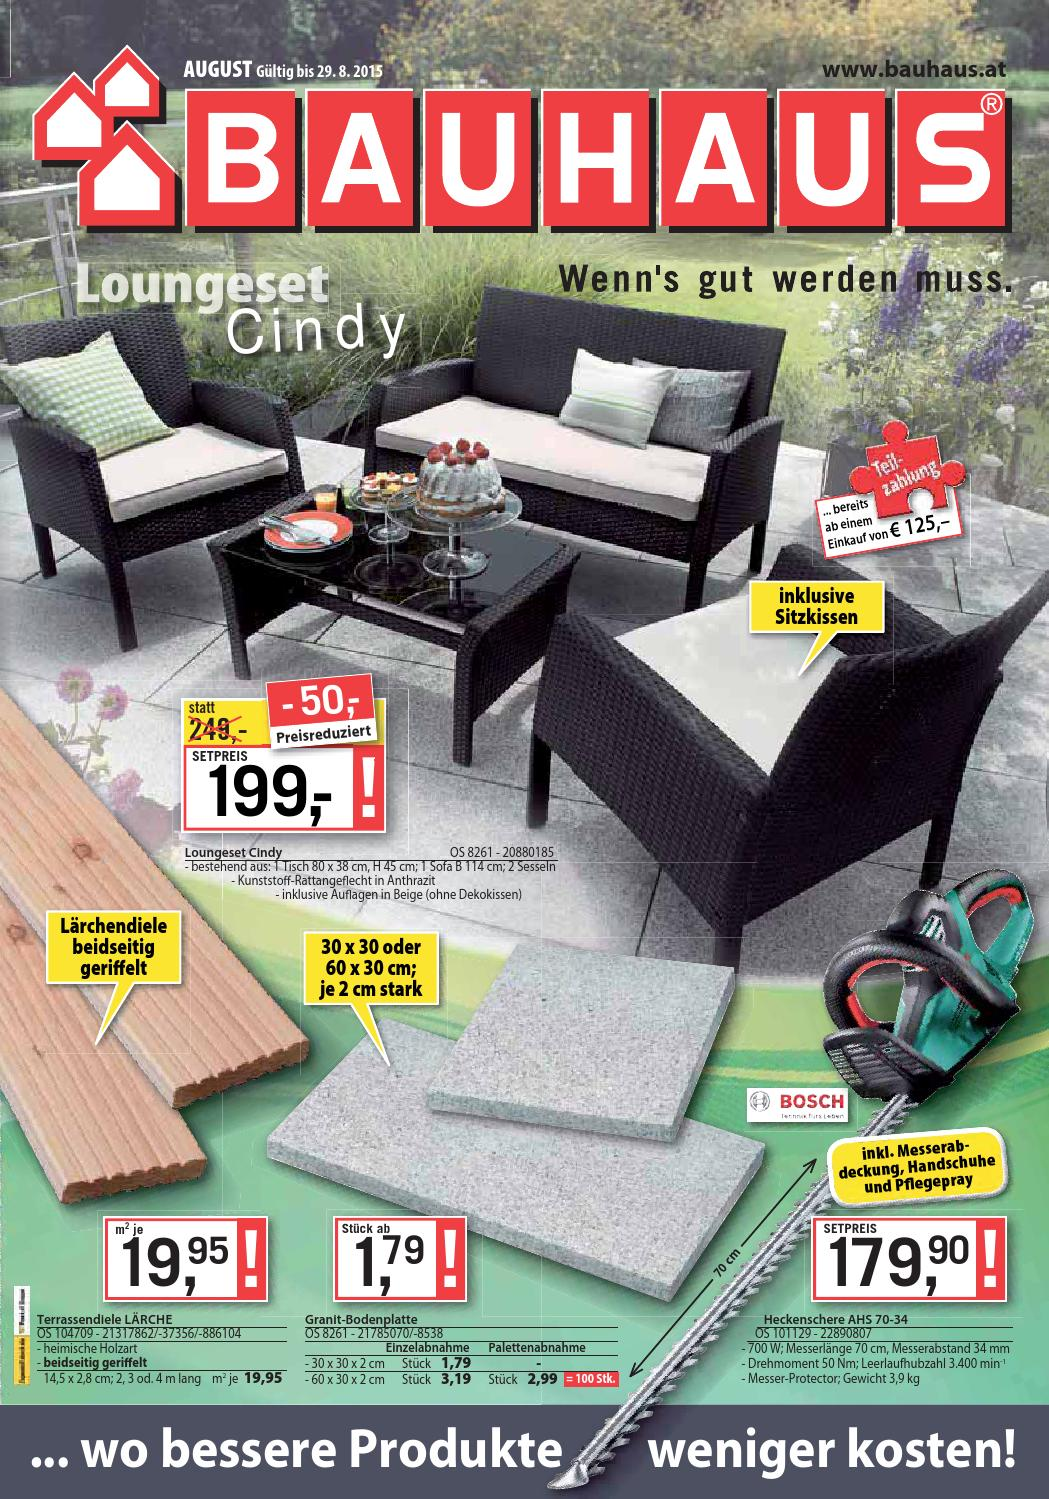 Lärche Terrassendielen Bauhaus Bauhaus Angebote 2 29august2015 By Promoangebote At Issuu